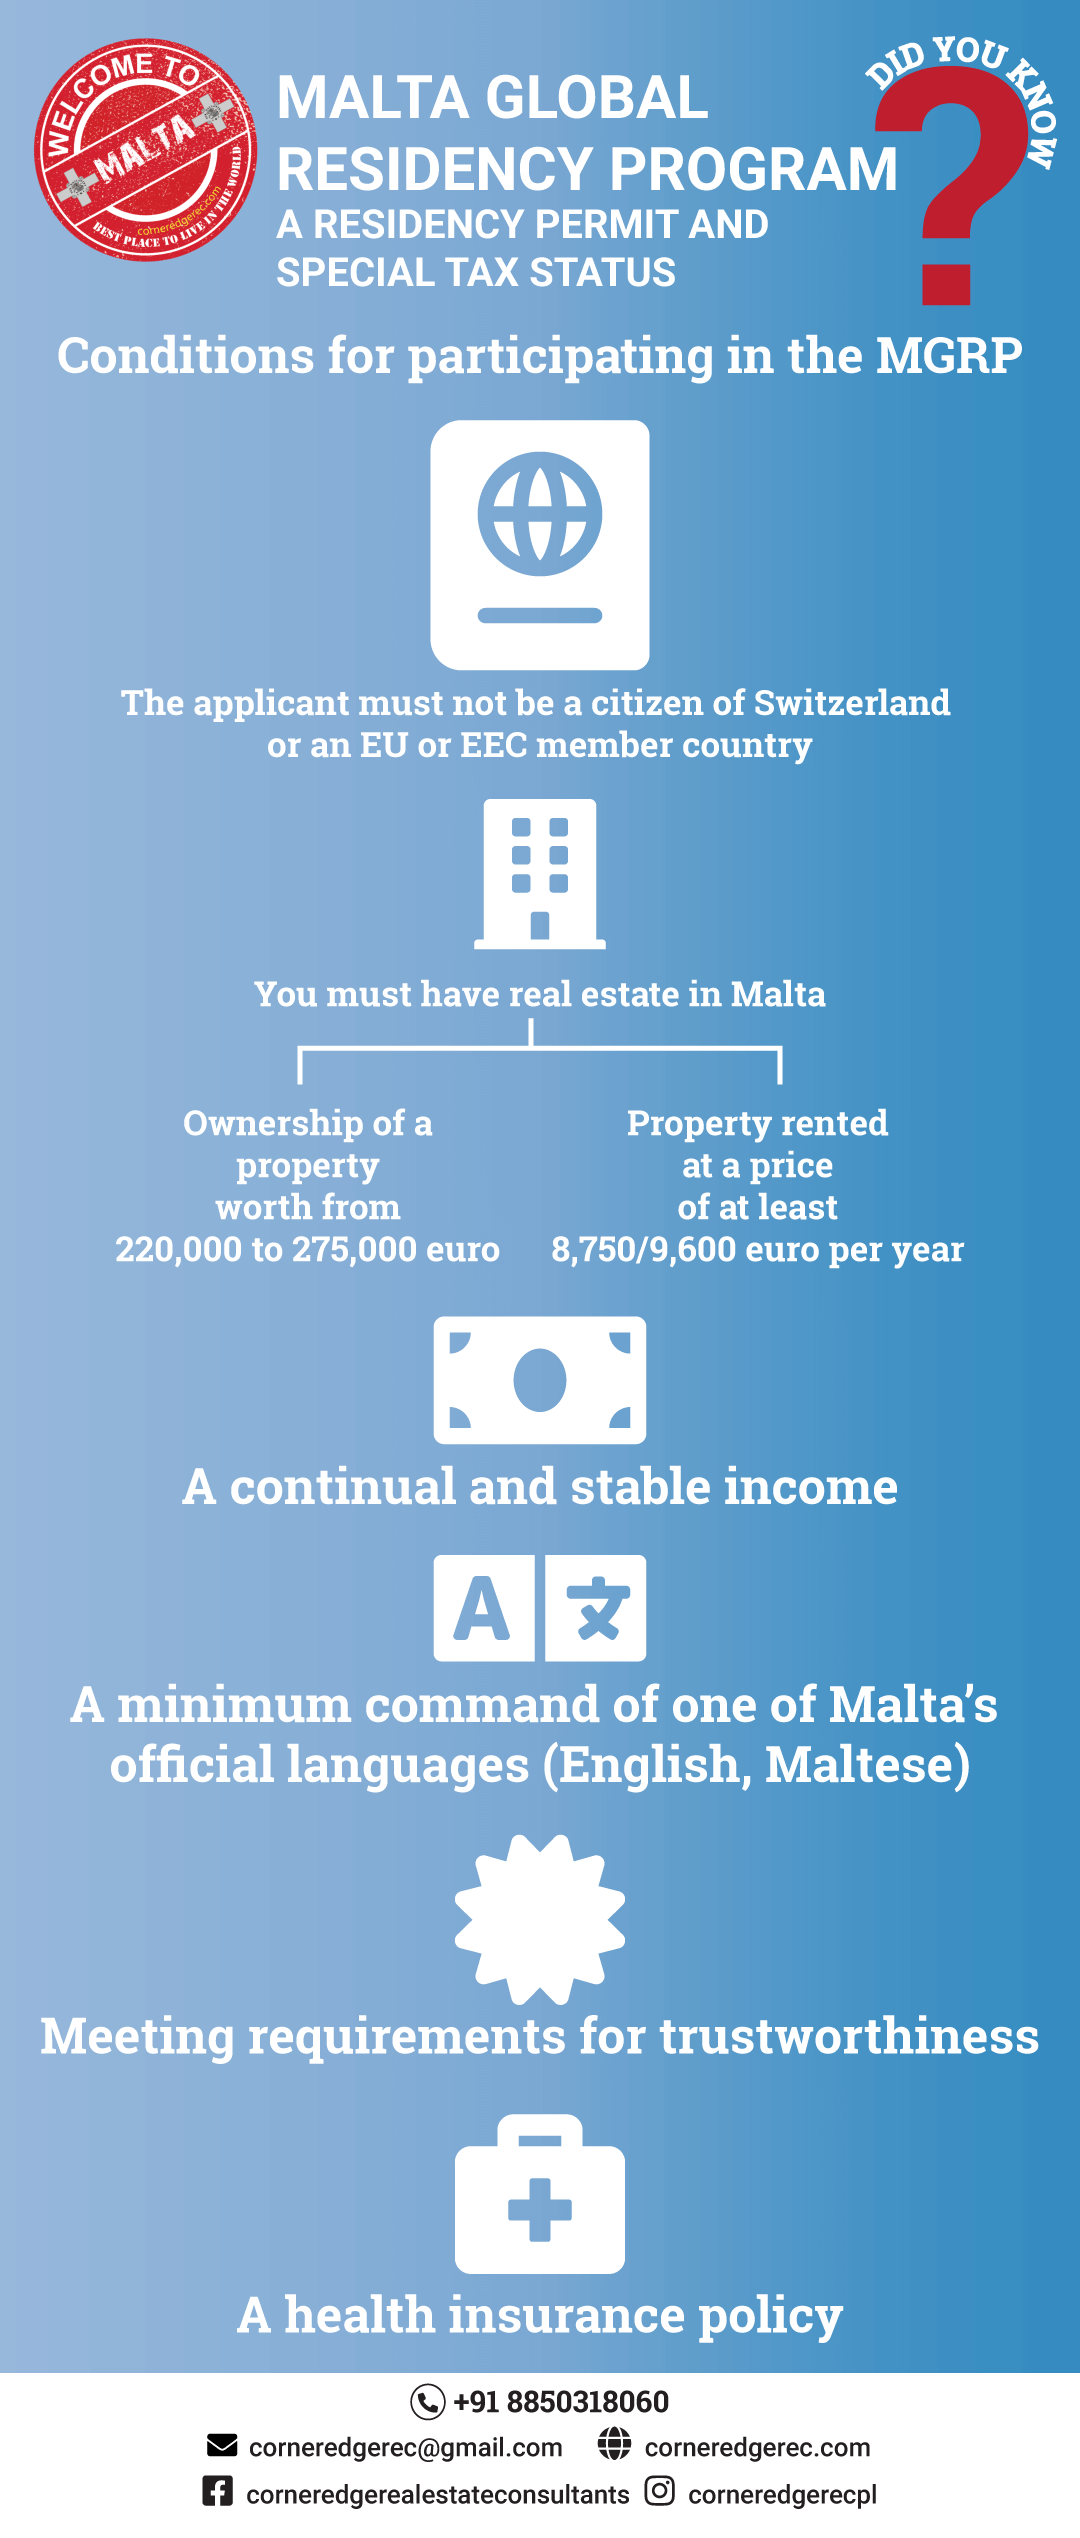 Malta Global Residency Program - Conditions